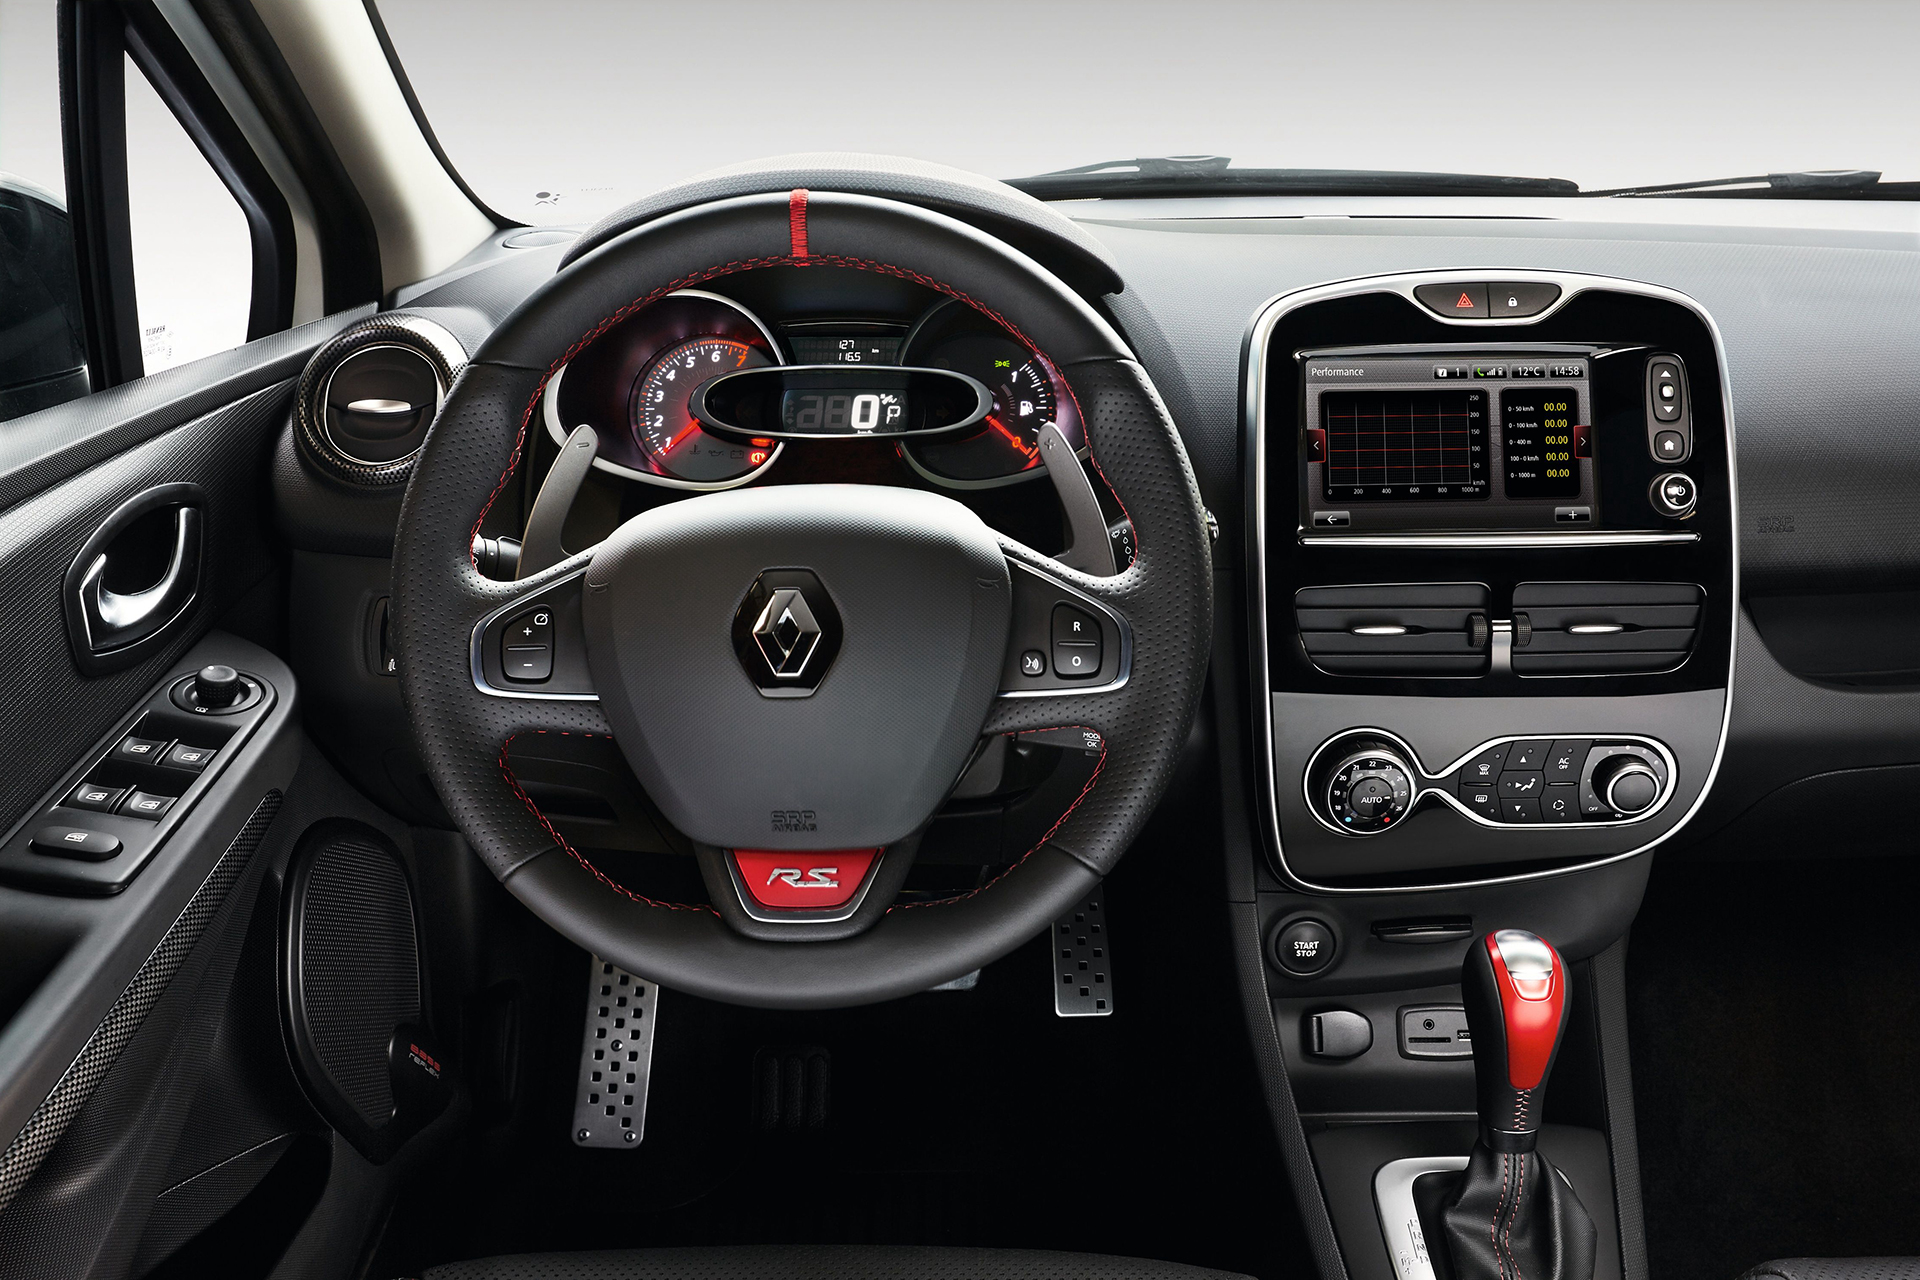 Renault Clio 4 R.S. 220 Trophy - 2015 - volant / racing wheel